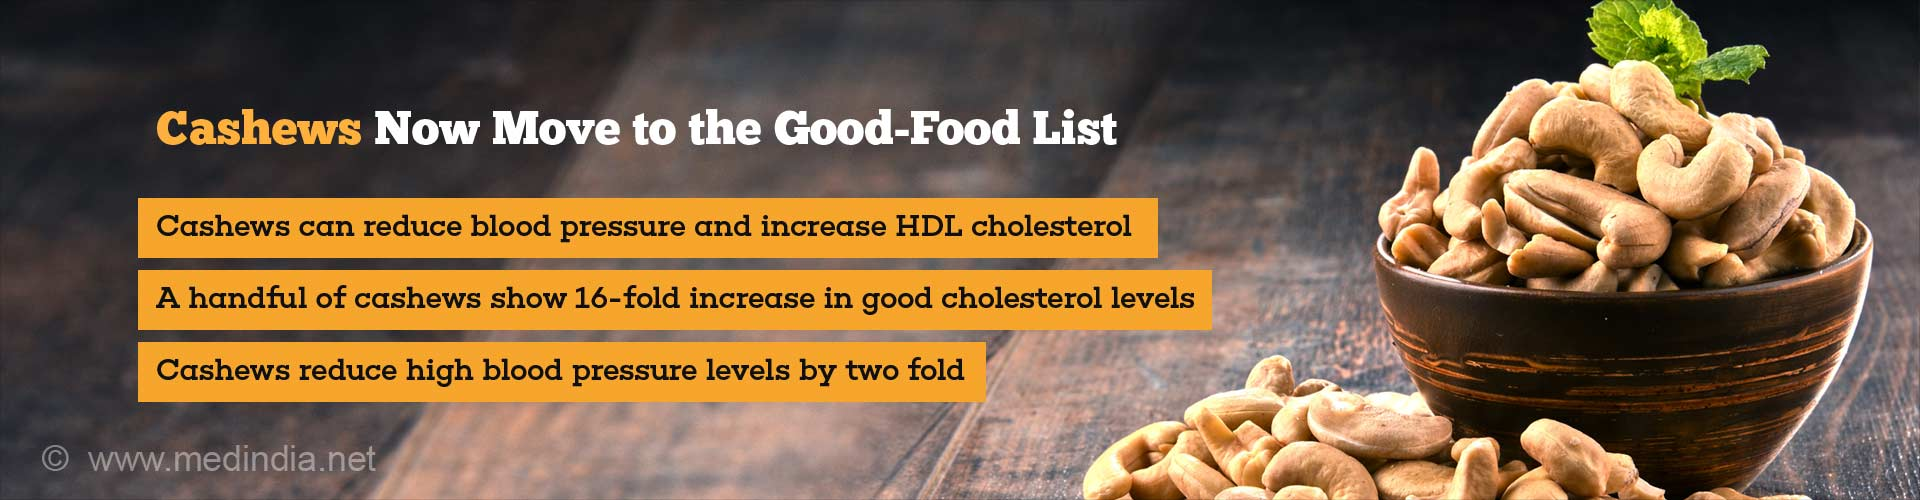 Cashews NO More Considered Unhealthy: Improve Good Cholesterol Levels